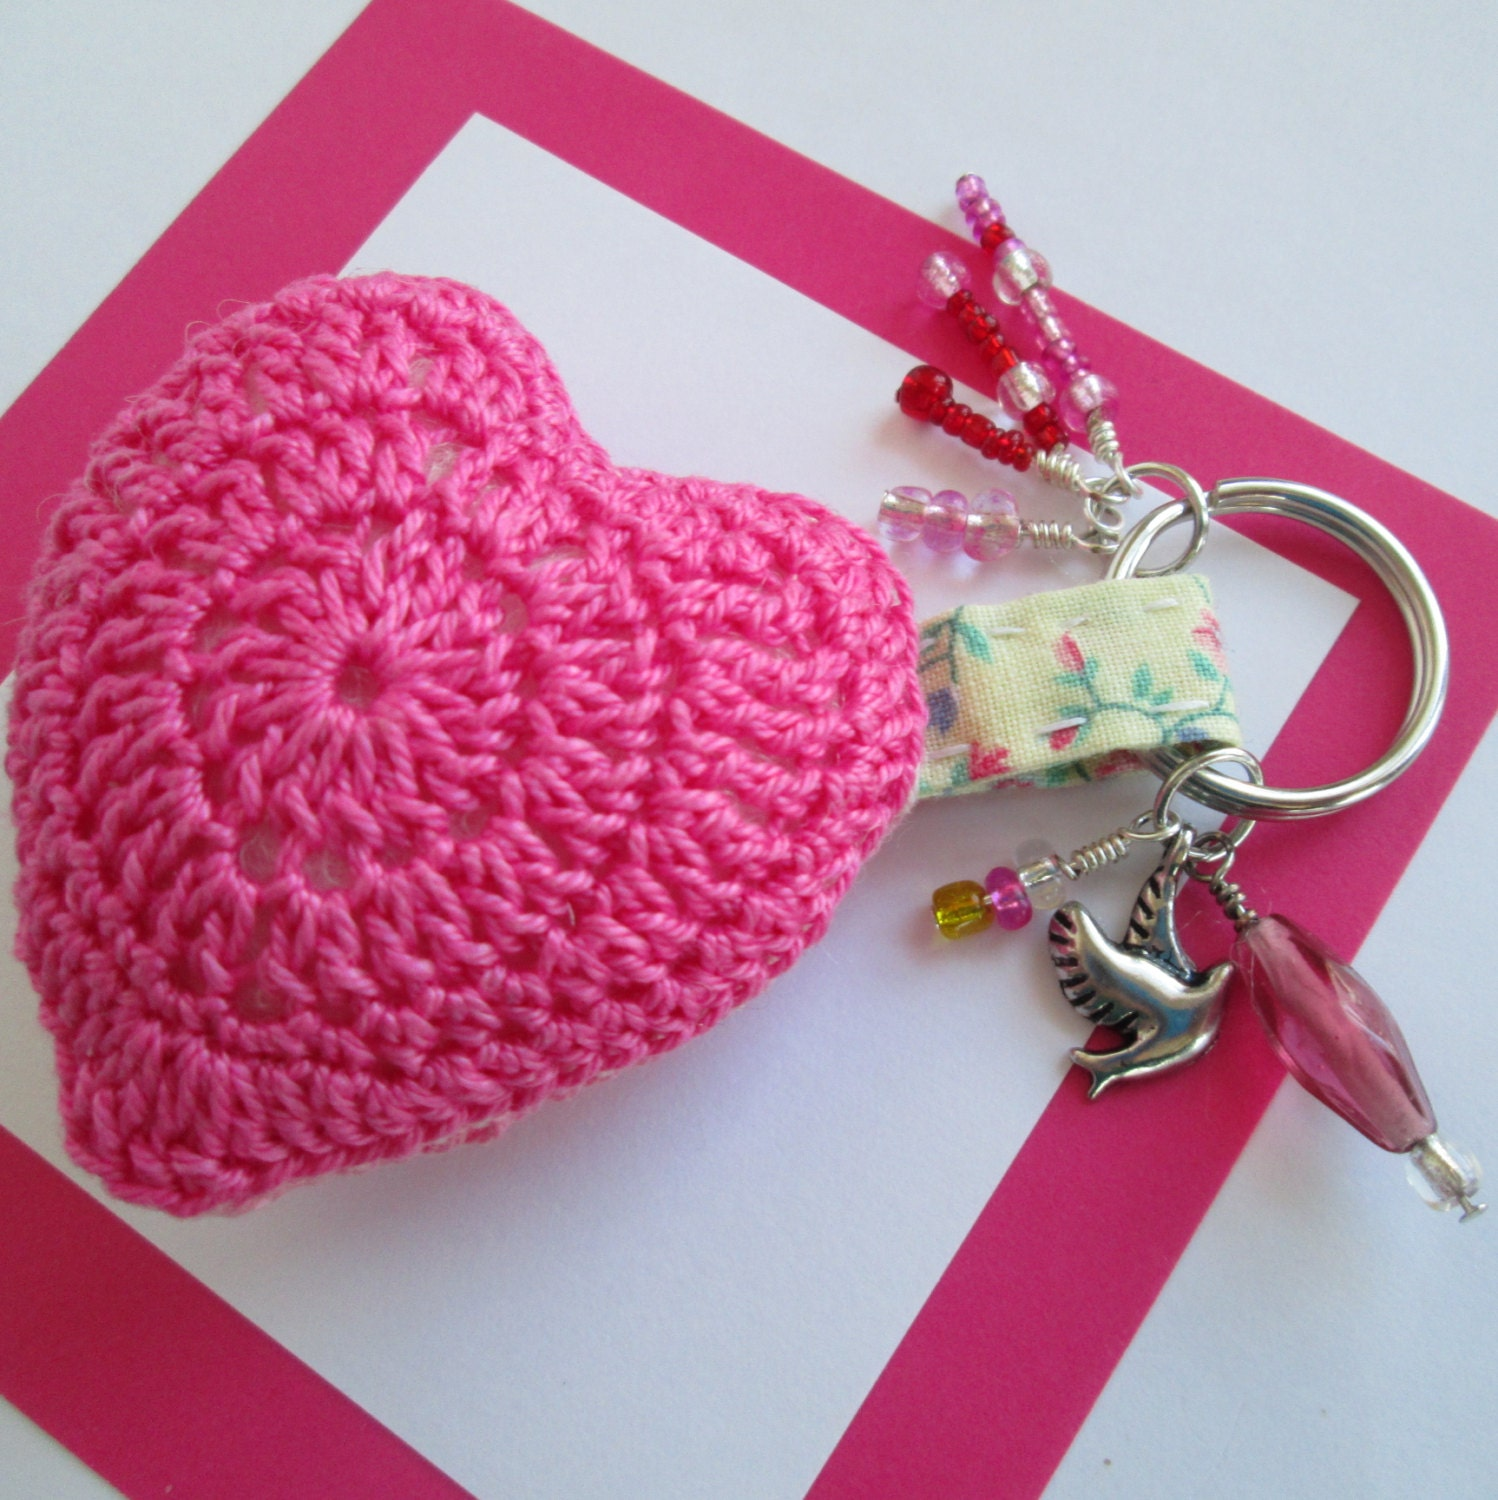 Crochet Keychain : Crochet Heart Keychain in Pink with Dove Charm by NirvanaDesigns